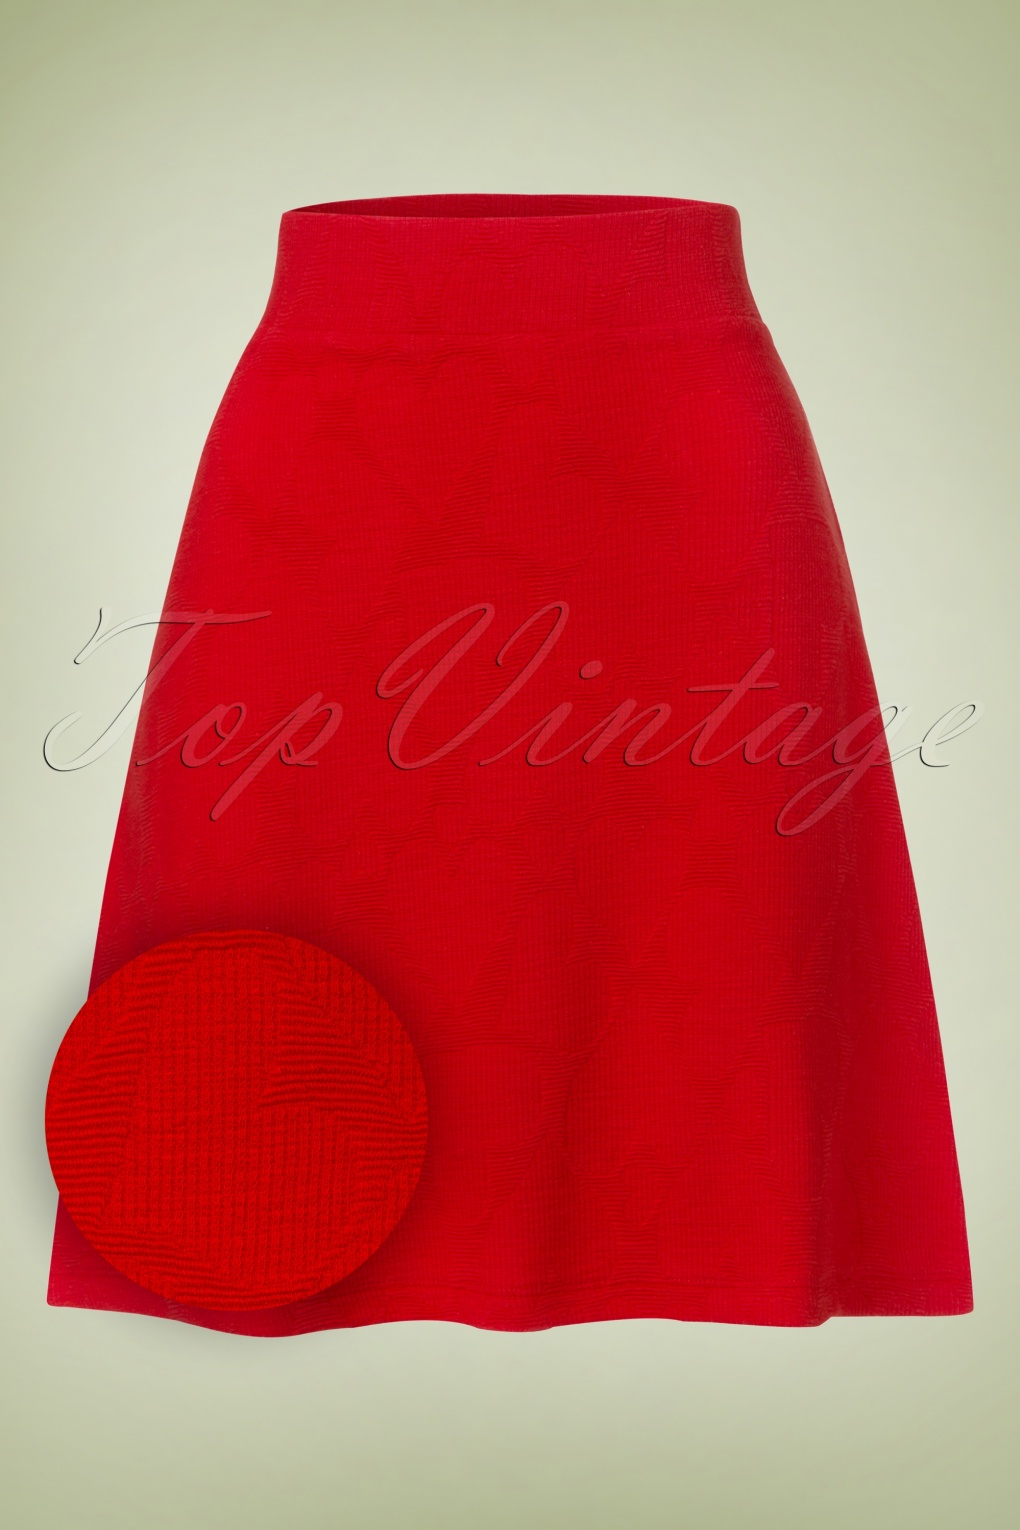 Retro Skirts: Vintage, Pencil, Circle, & Plus Sizes 60s Lovely Love Hearts Skirt in Red £38.18 AT vintagedancer.com